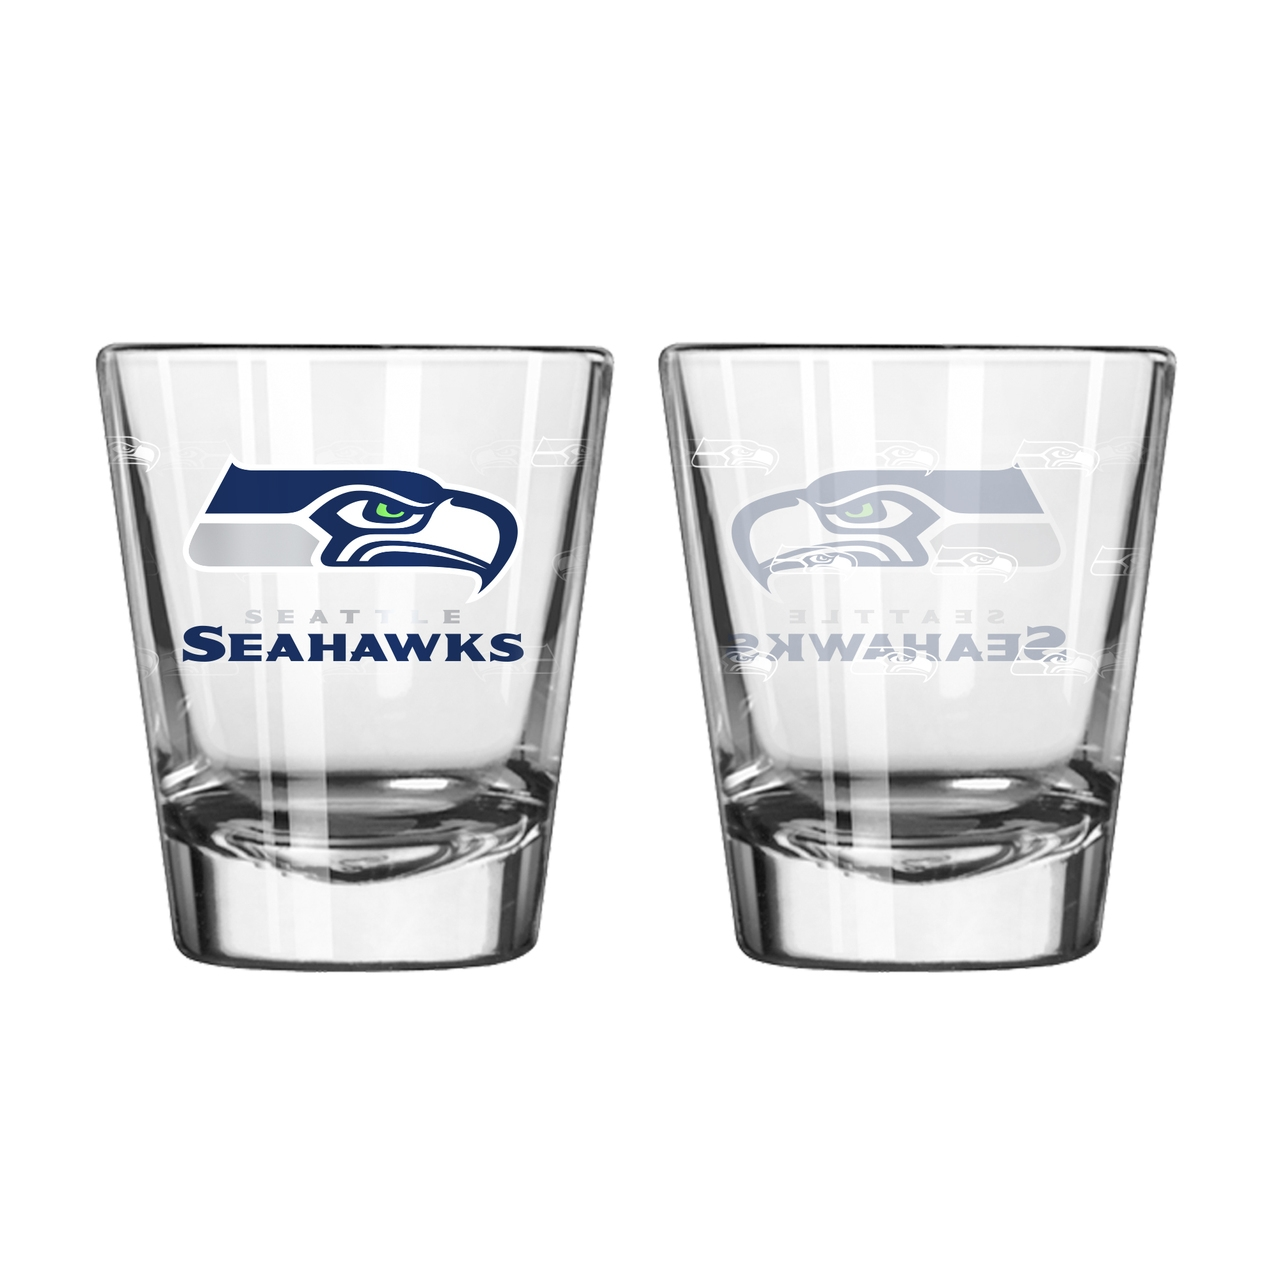 Seattle Seahawks Shot Glass-2 Pack Satin Etch - 8886024841 - Nfl Football Seattle Seahawks Shot Glasses 8886024841